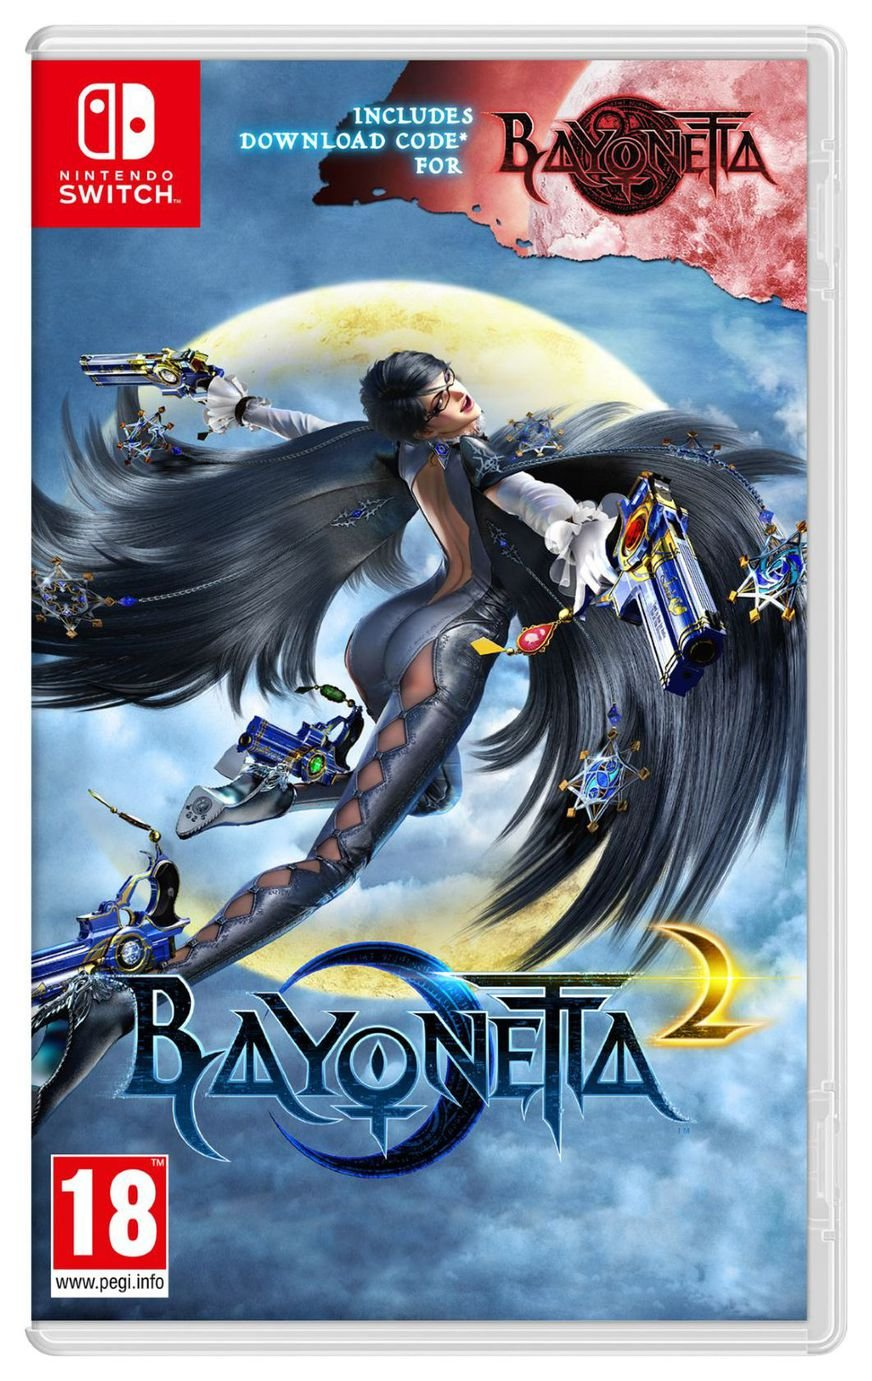 Bayonetta 2 with Bayonetta DDC Nintendo Switch Game from Bayonetta